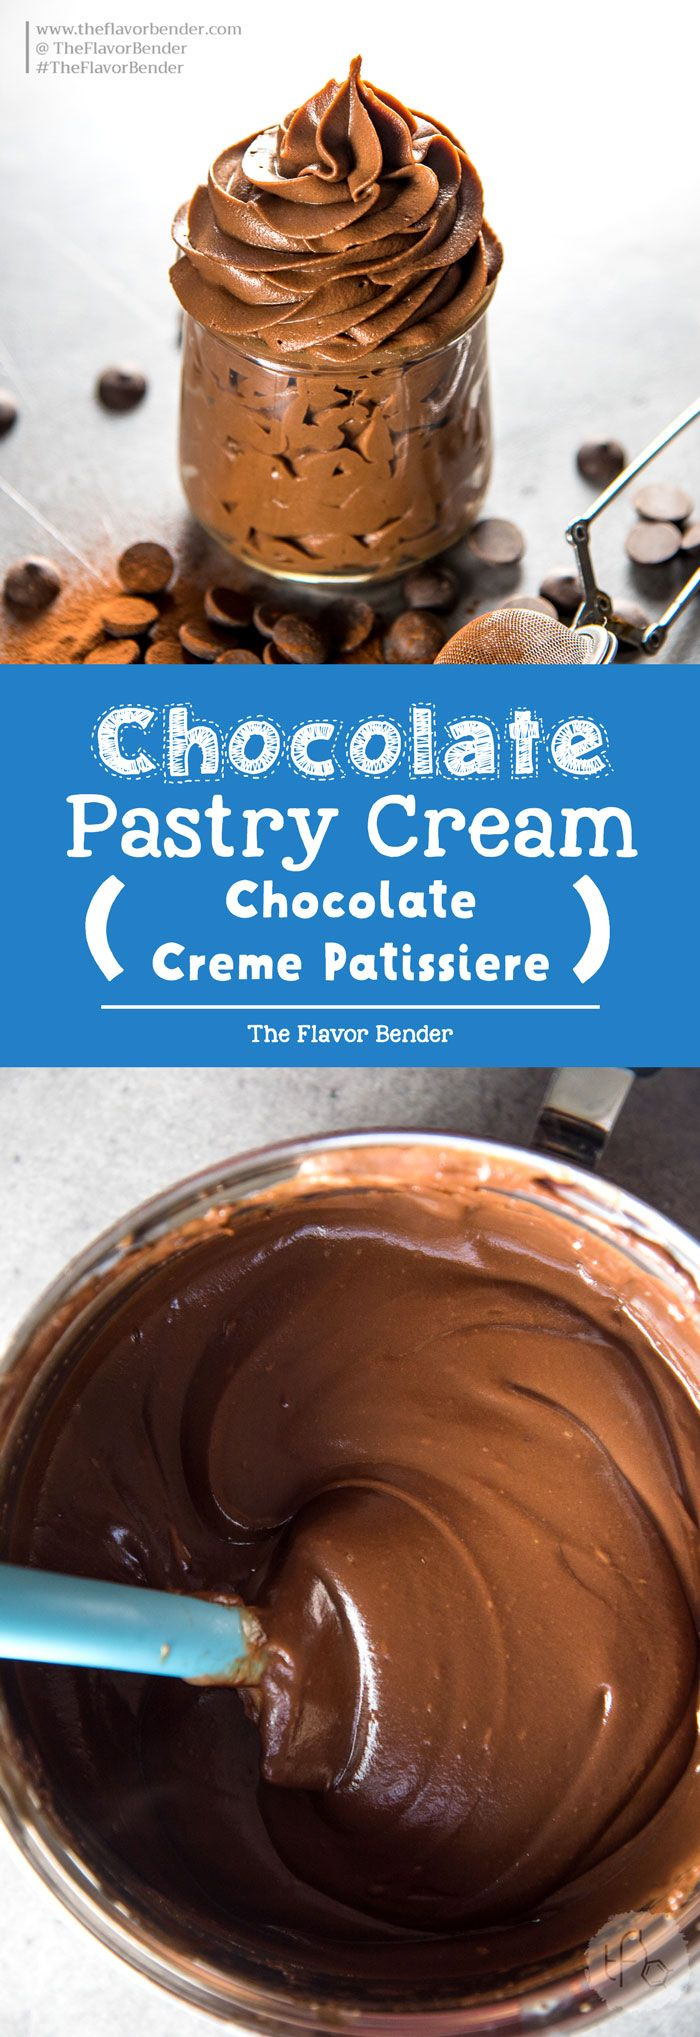 Chocolate Creme Patissiere (Chocolate Pastry Cream) - a rich, creamy custard with deep chocolate flavor, that can be used in many types of dessert. This recipe is gluten free and dairy free friendly.  via @theflavorbender